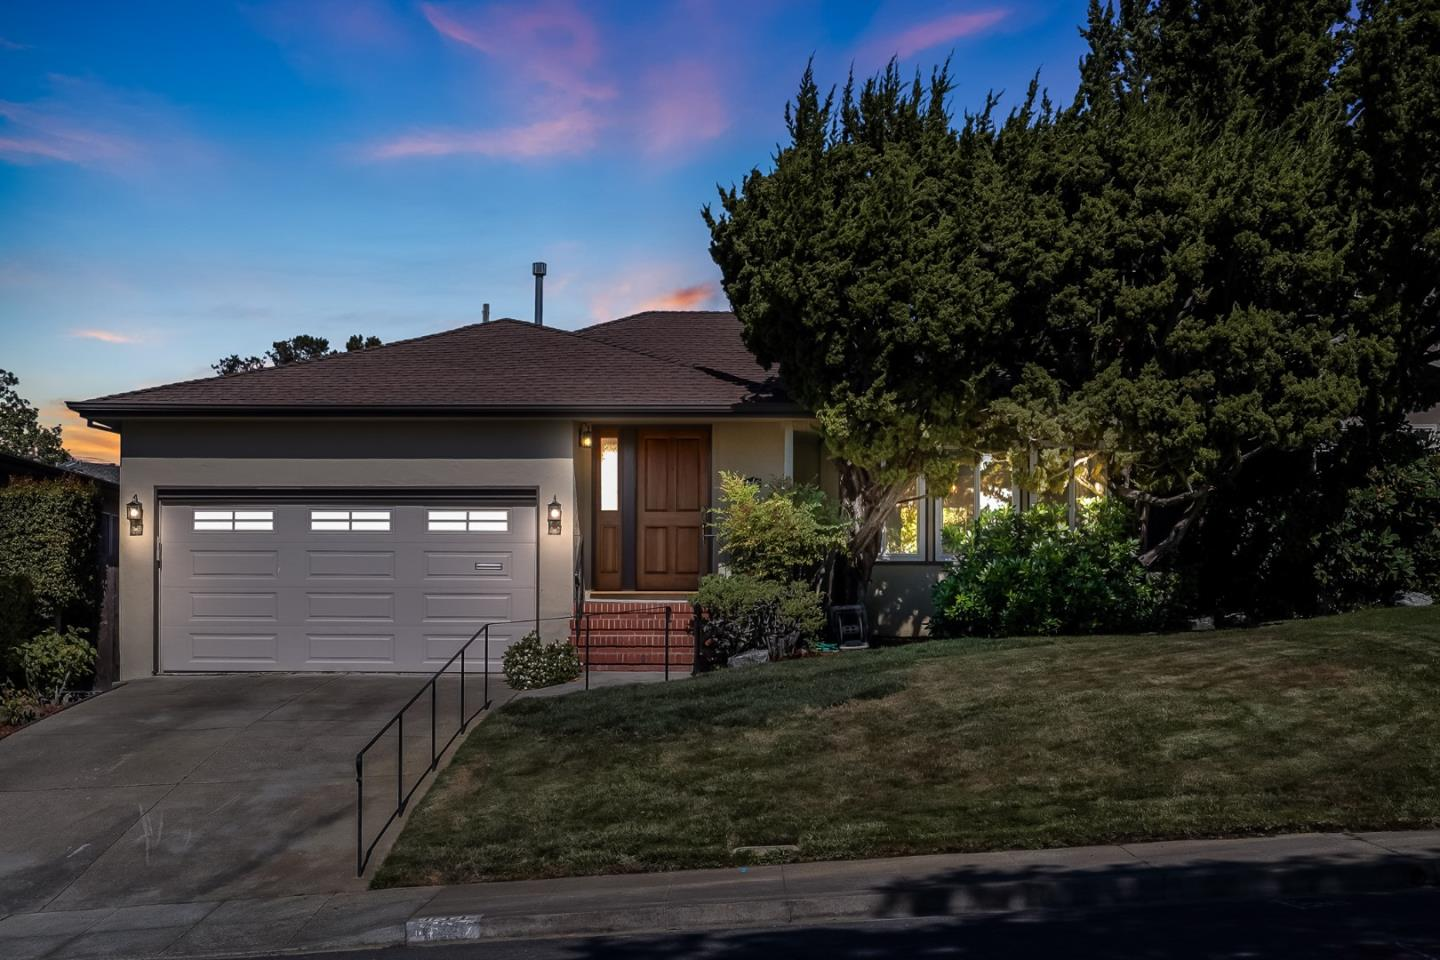 This California Ranch style home is prominently situated on Nevada Avenue with mature trees and the perfect balance of front and backyard space. The home floor plan makes for easy living with a spacious living room and dining room grouped around the centrally located kitchen. The central hallway connects the more formal front with back area featuring the three bedrooms and two bathrooms, opening up to the semi-enclosed back patio. The back yard in parts evokes Karesansui , the crown jewel of which is the Japanese tea house - an authentic period piece of the 1950s, which shares the heritage and traditions of the tea houses in San Mateo's Central Park and Golden Gate Park's Japanese Garden of the same period. As a successful blend of Eastern and Western design and style principals, this home features the best of Mid-Century California in the Baywood neighborhood - one of San Mateos most prestigious areas to call home!